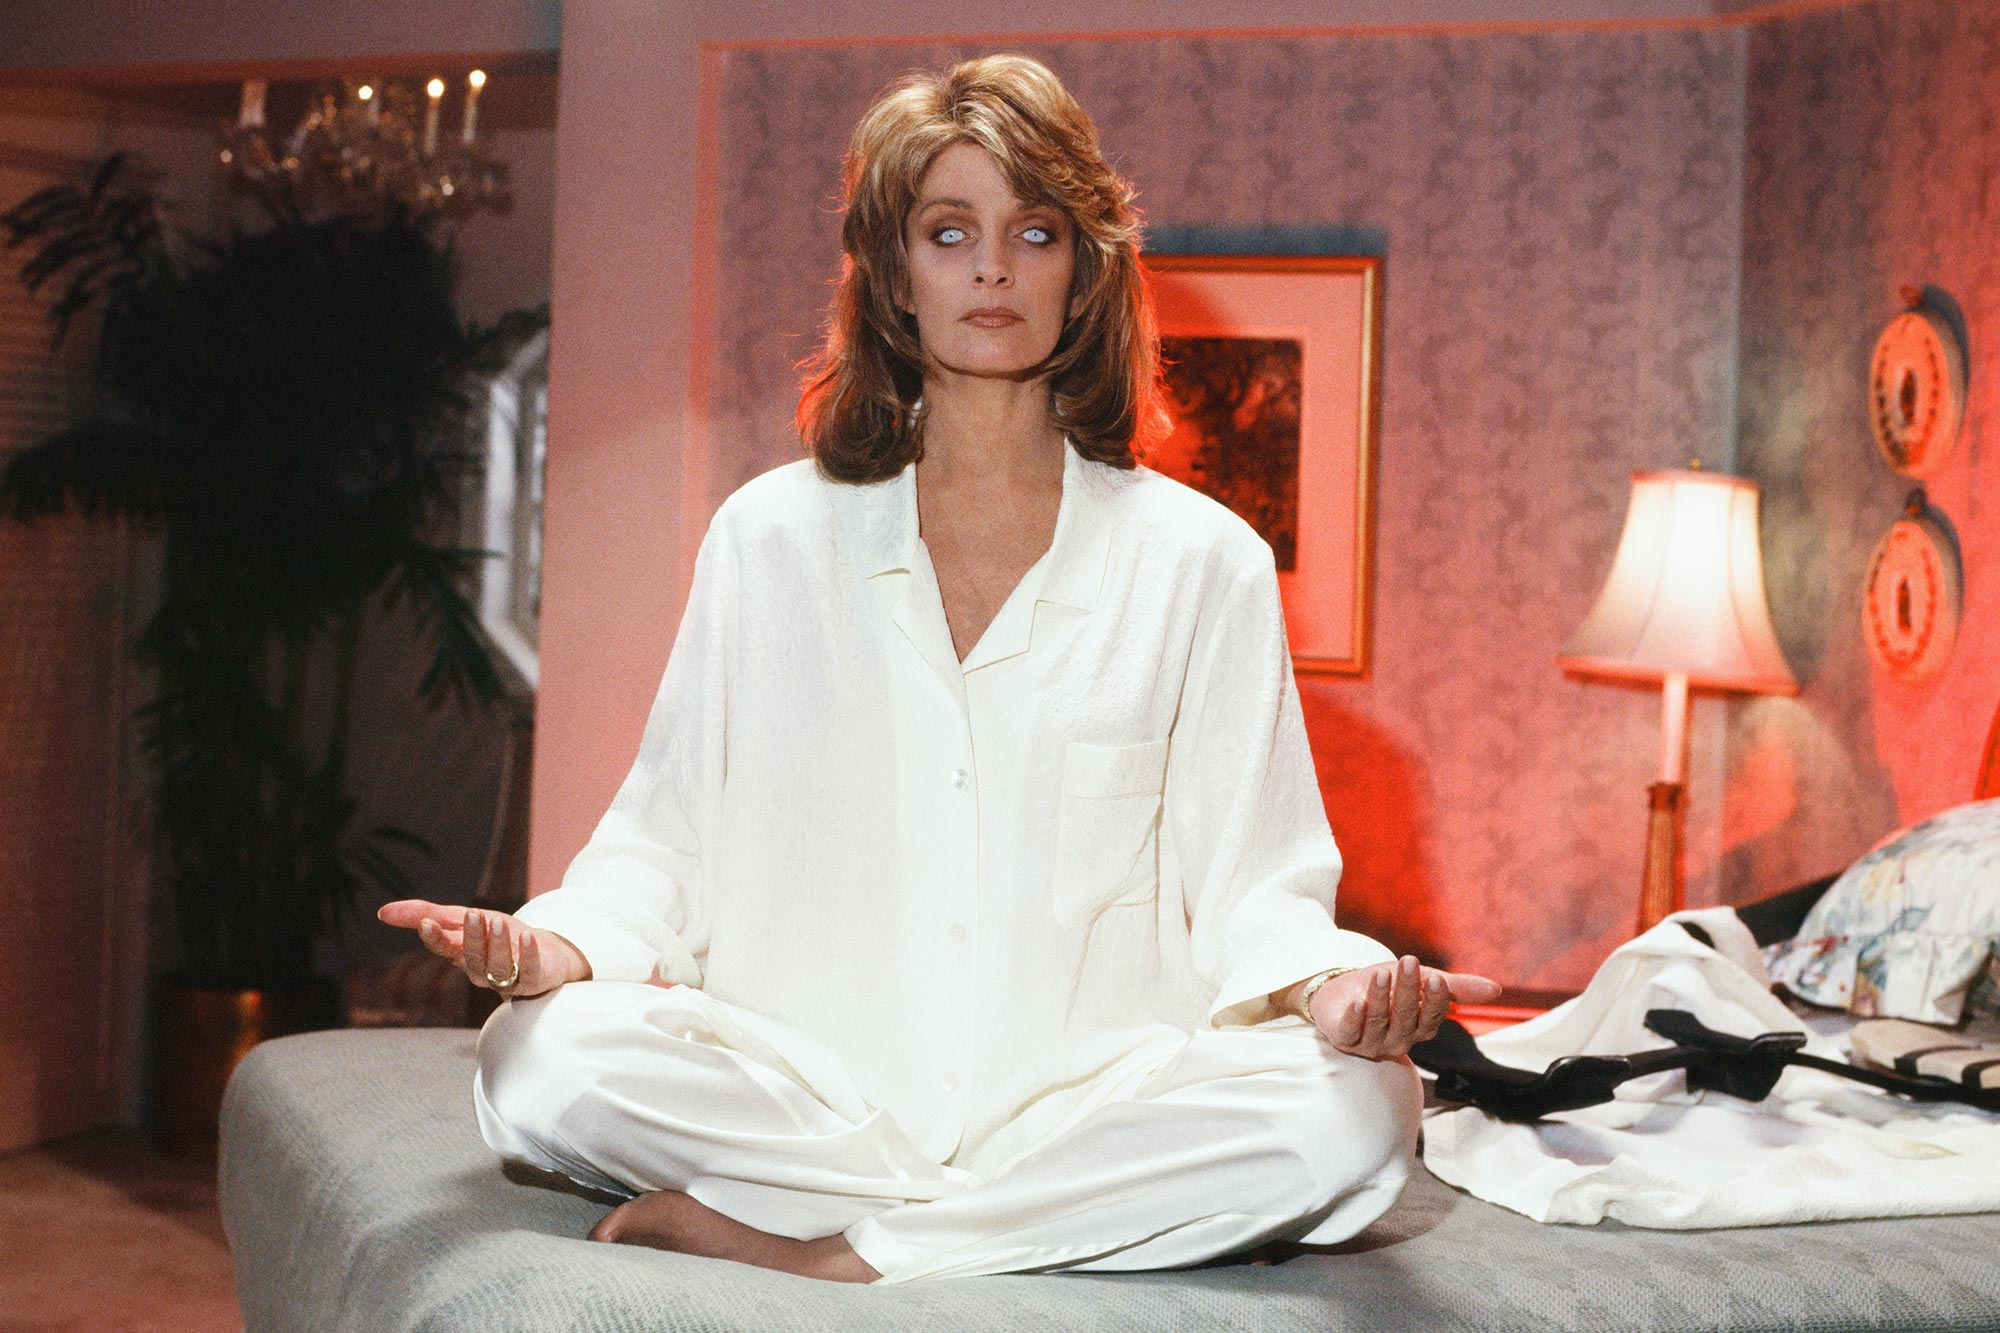 Days of Our Lives demon possession